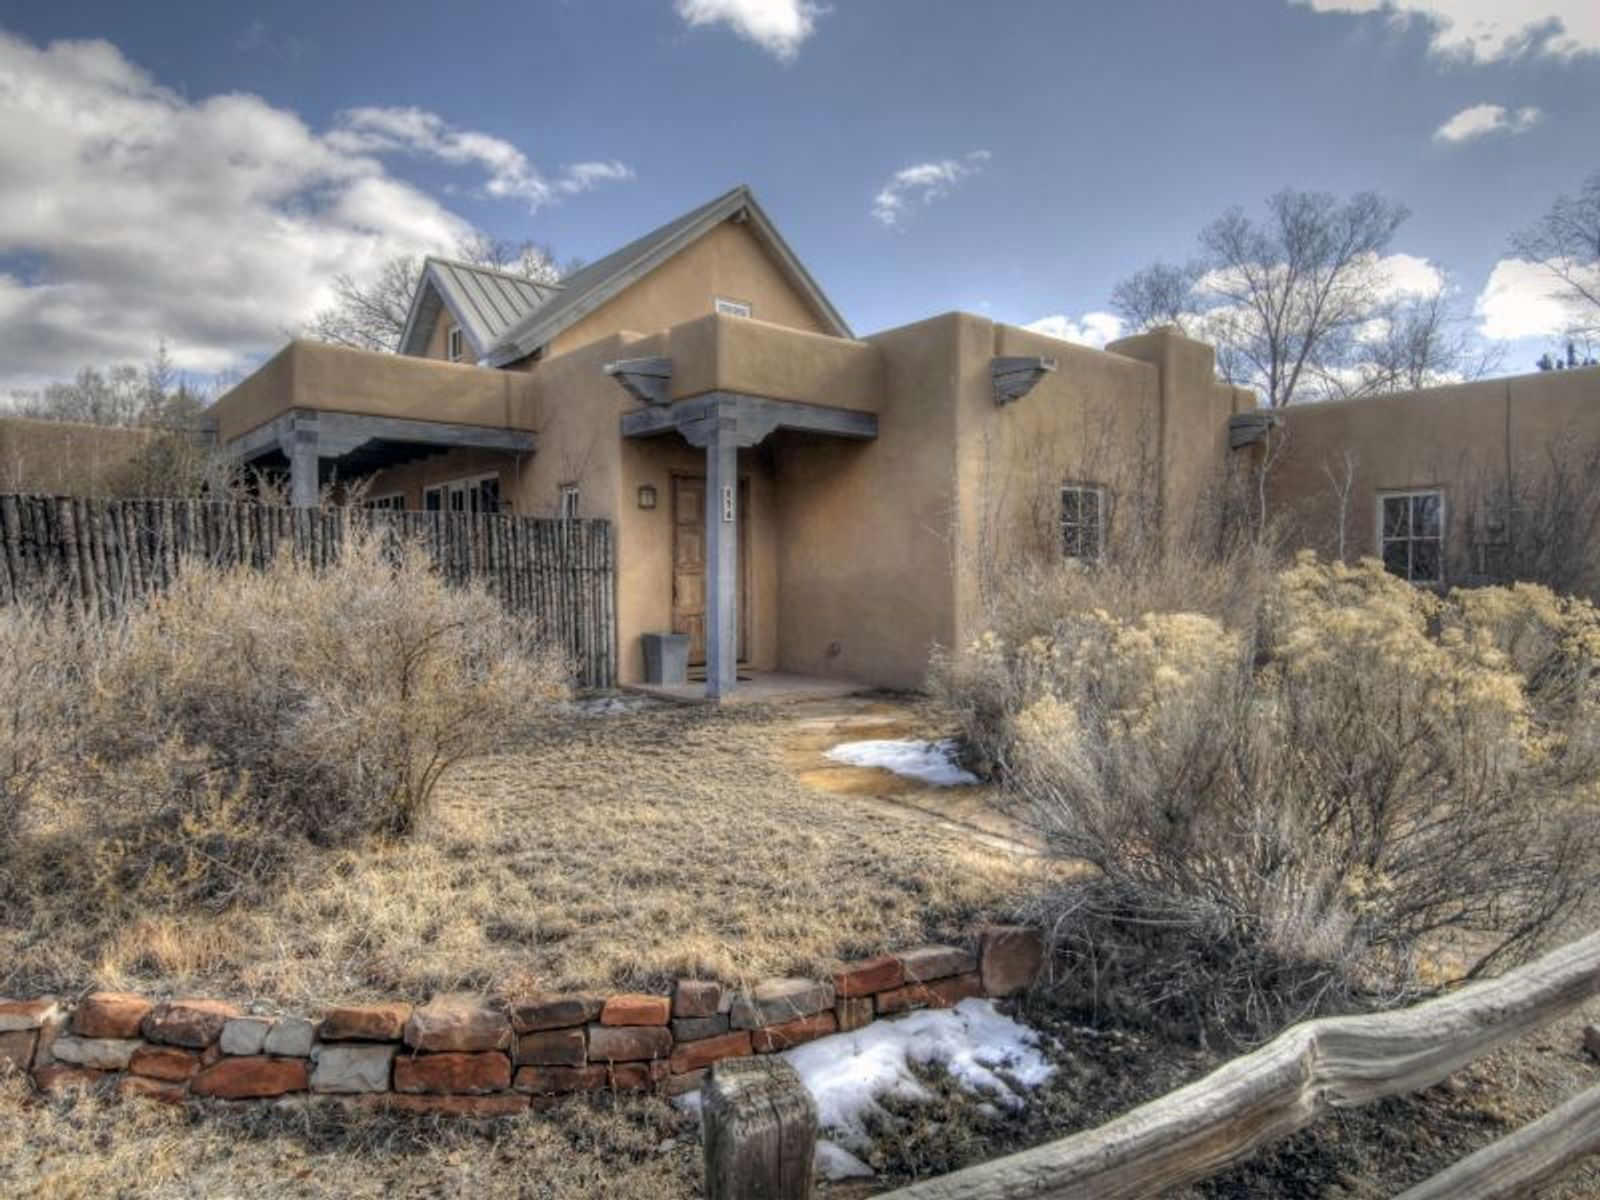 14 Avenida Campo Verde, Santa Fe NM Single Family Home - Santa Fe Real Estate